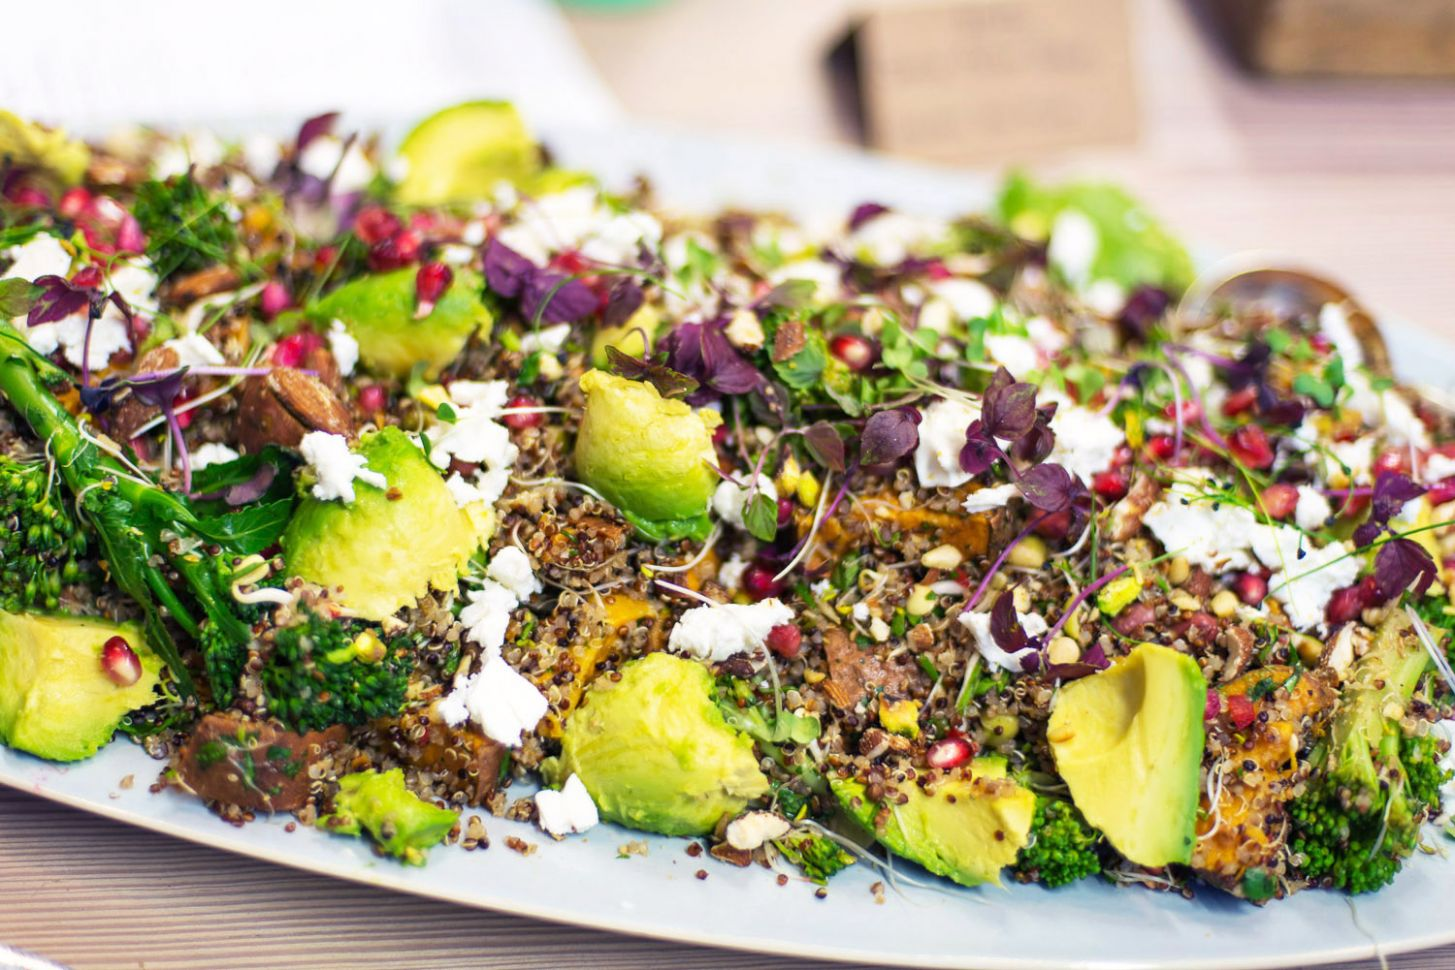 Jamie Oliver's Superfood Salad